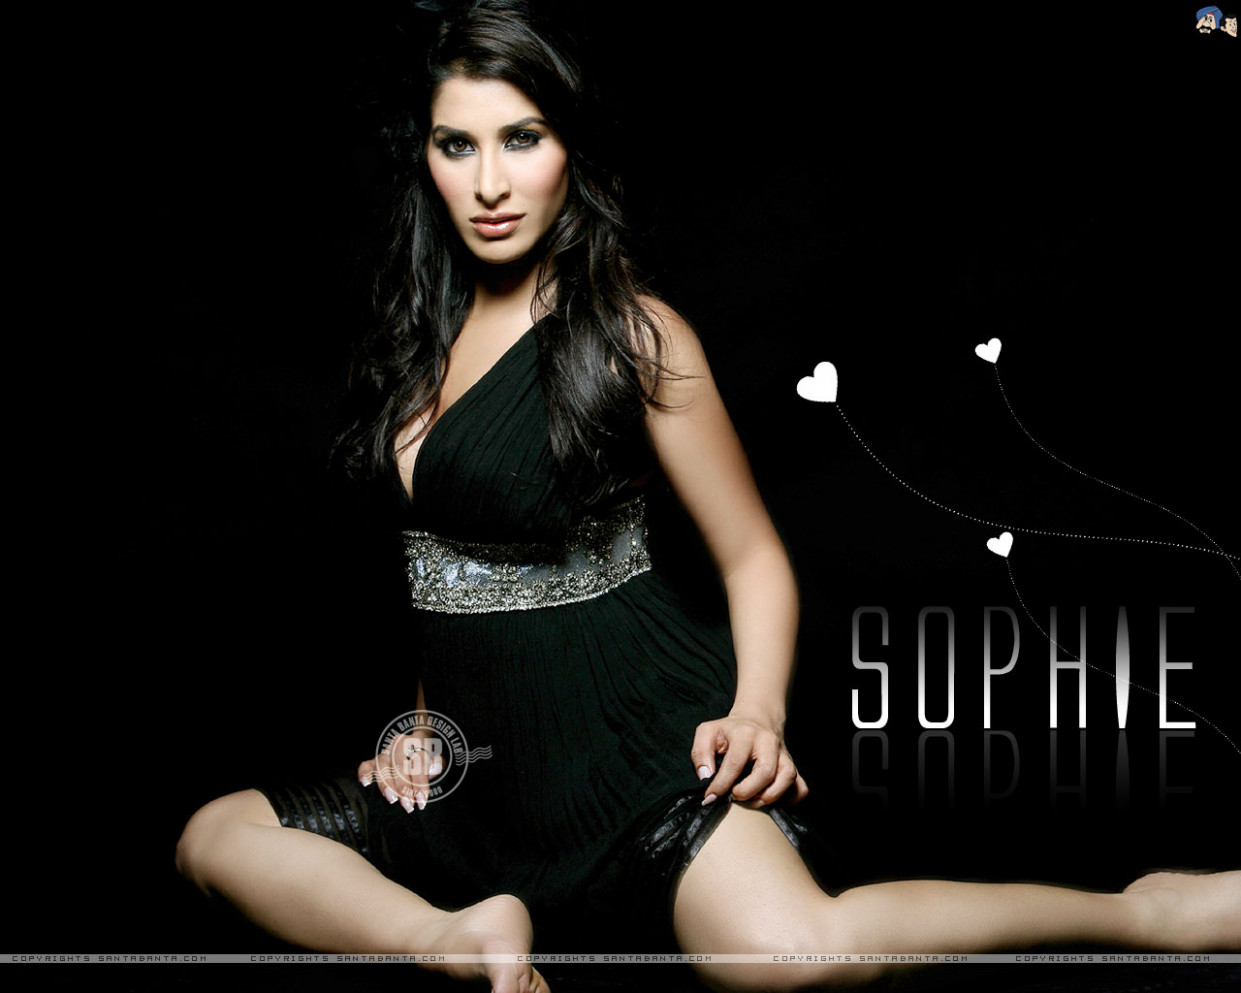 Hind Sindh 4u: Bollywood Queen 2012 HD Wallpapers - bollywood queen wallpaper